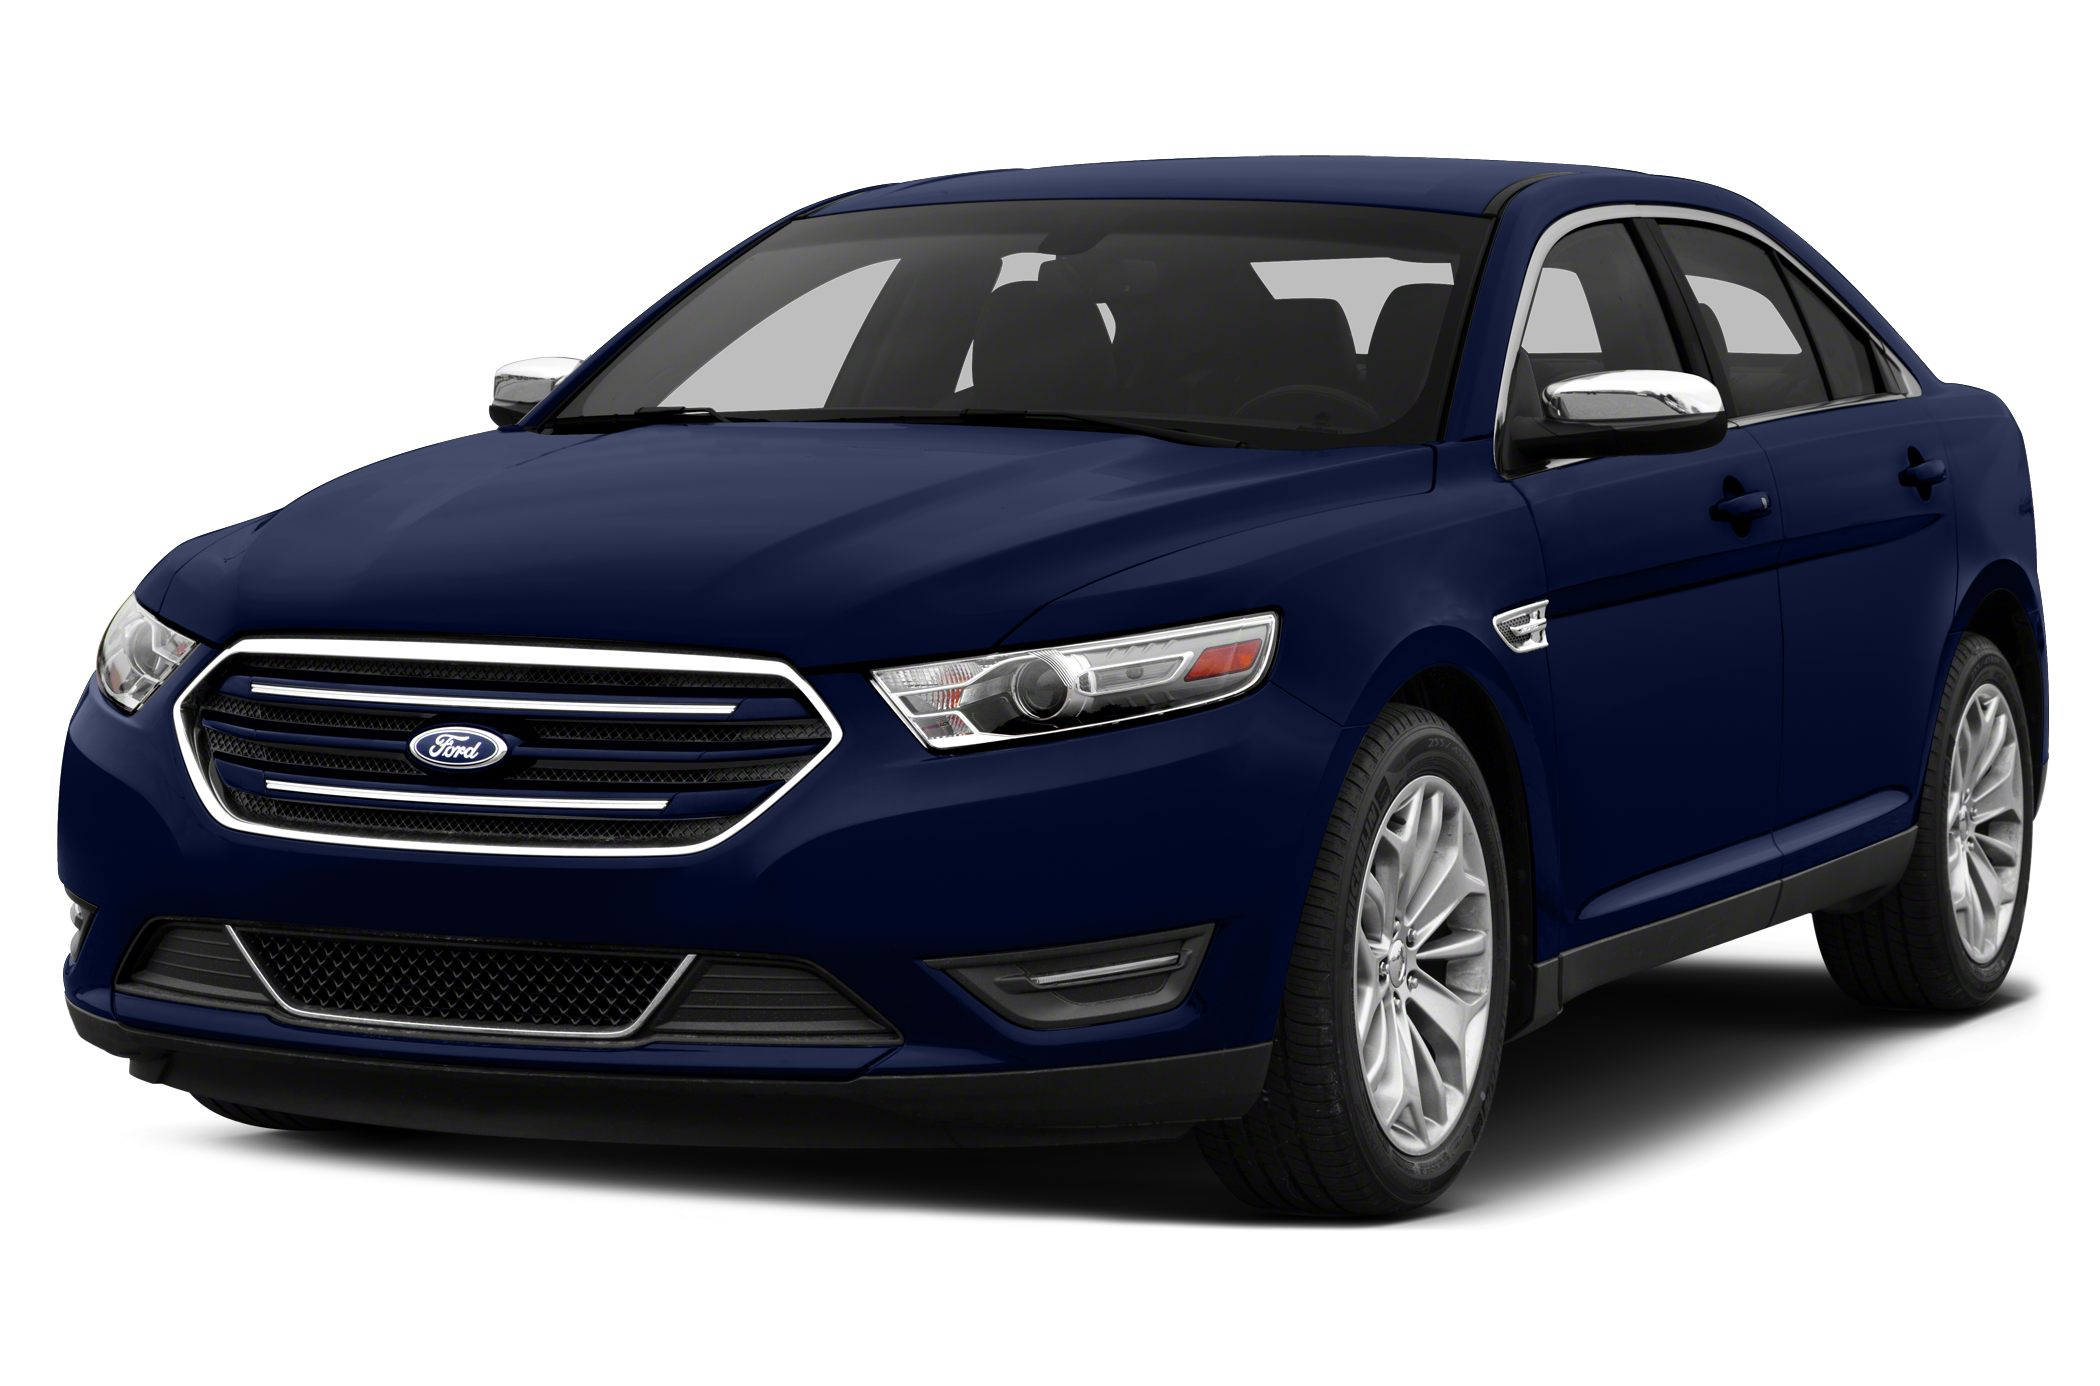 2015 Ford Taurus SEL Sedan for sale in York for $33,463 with 6 miles